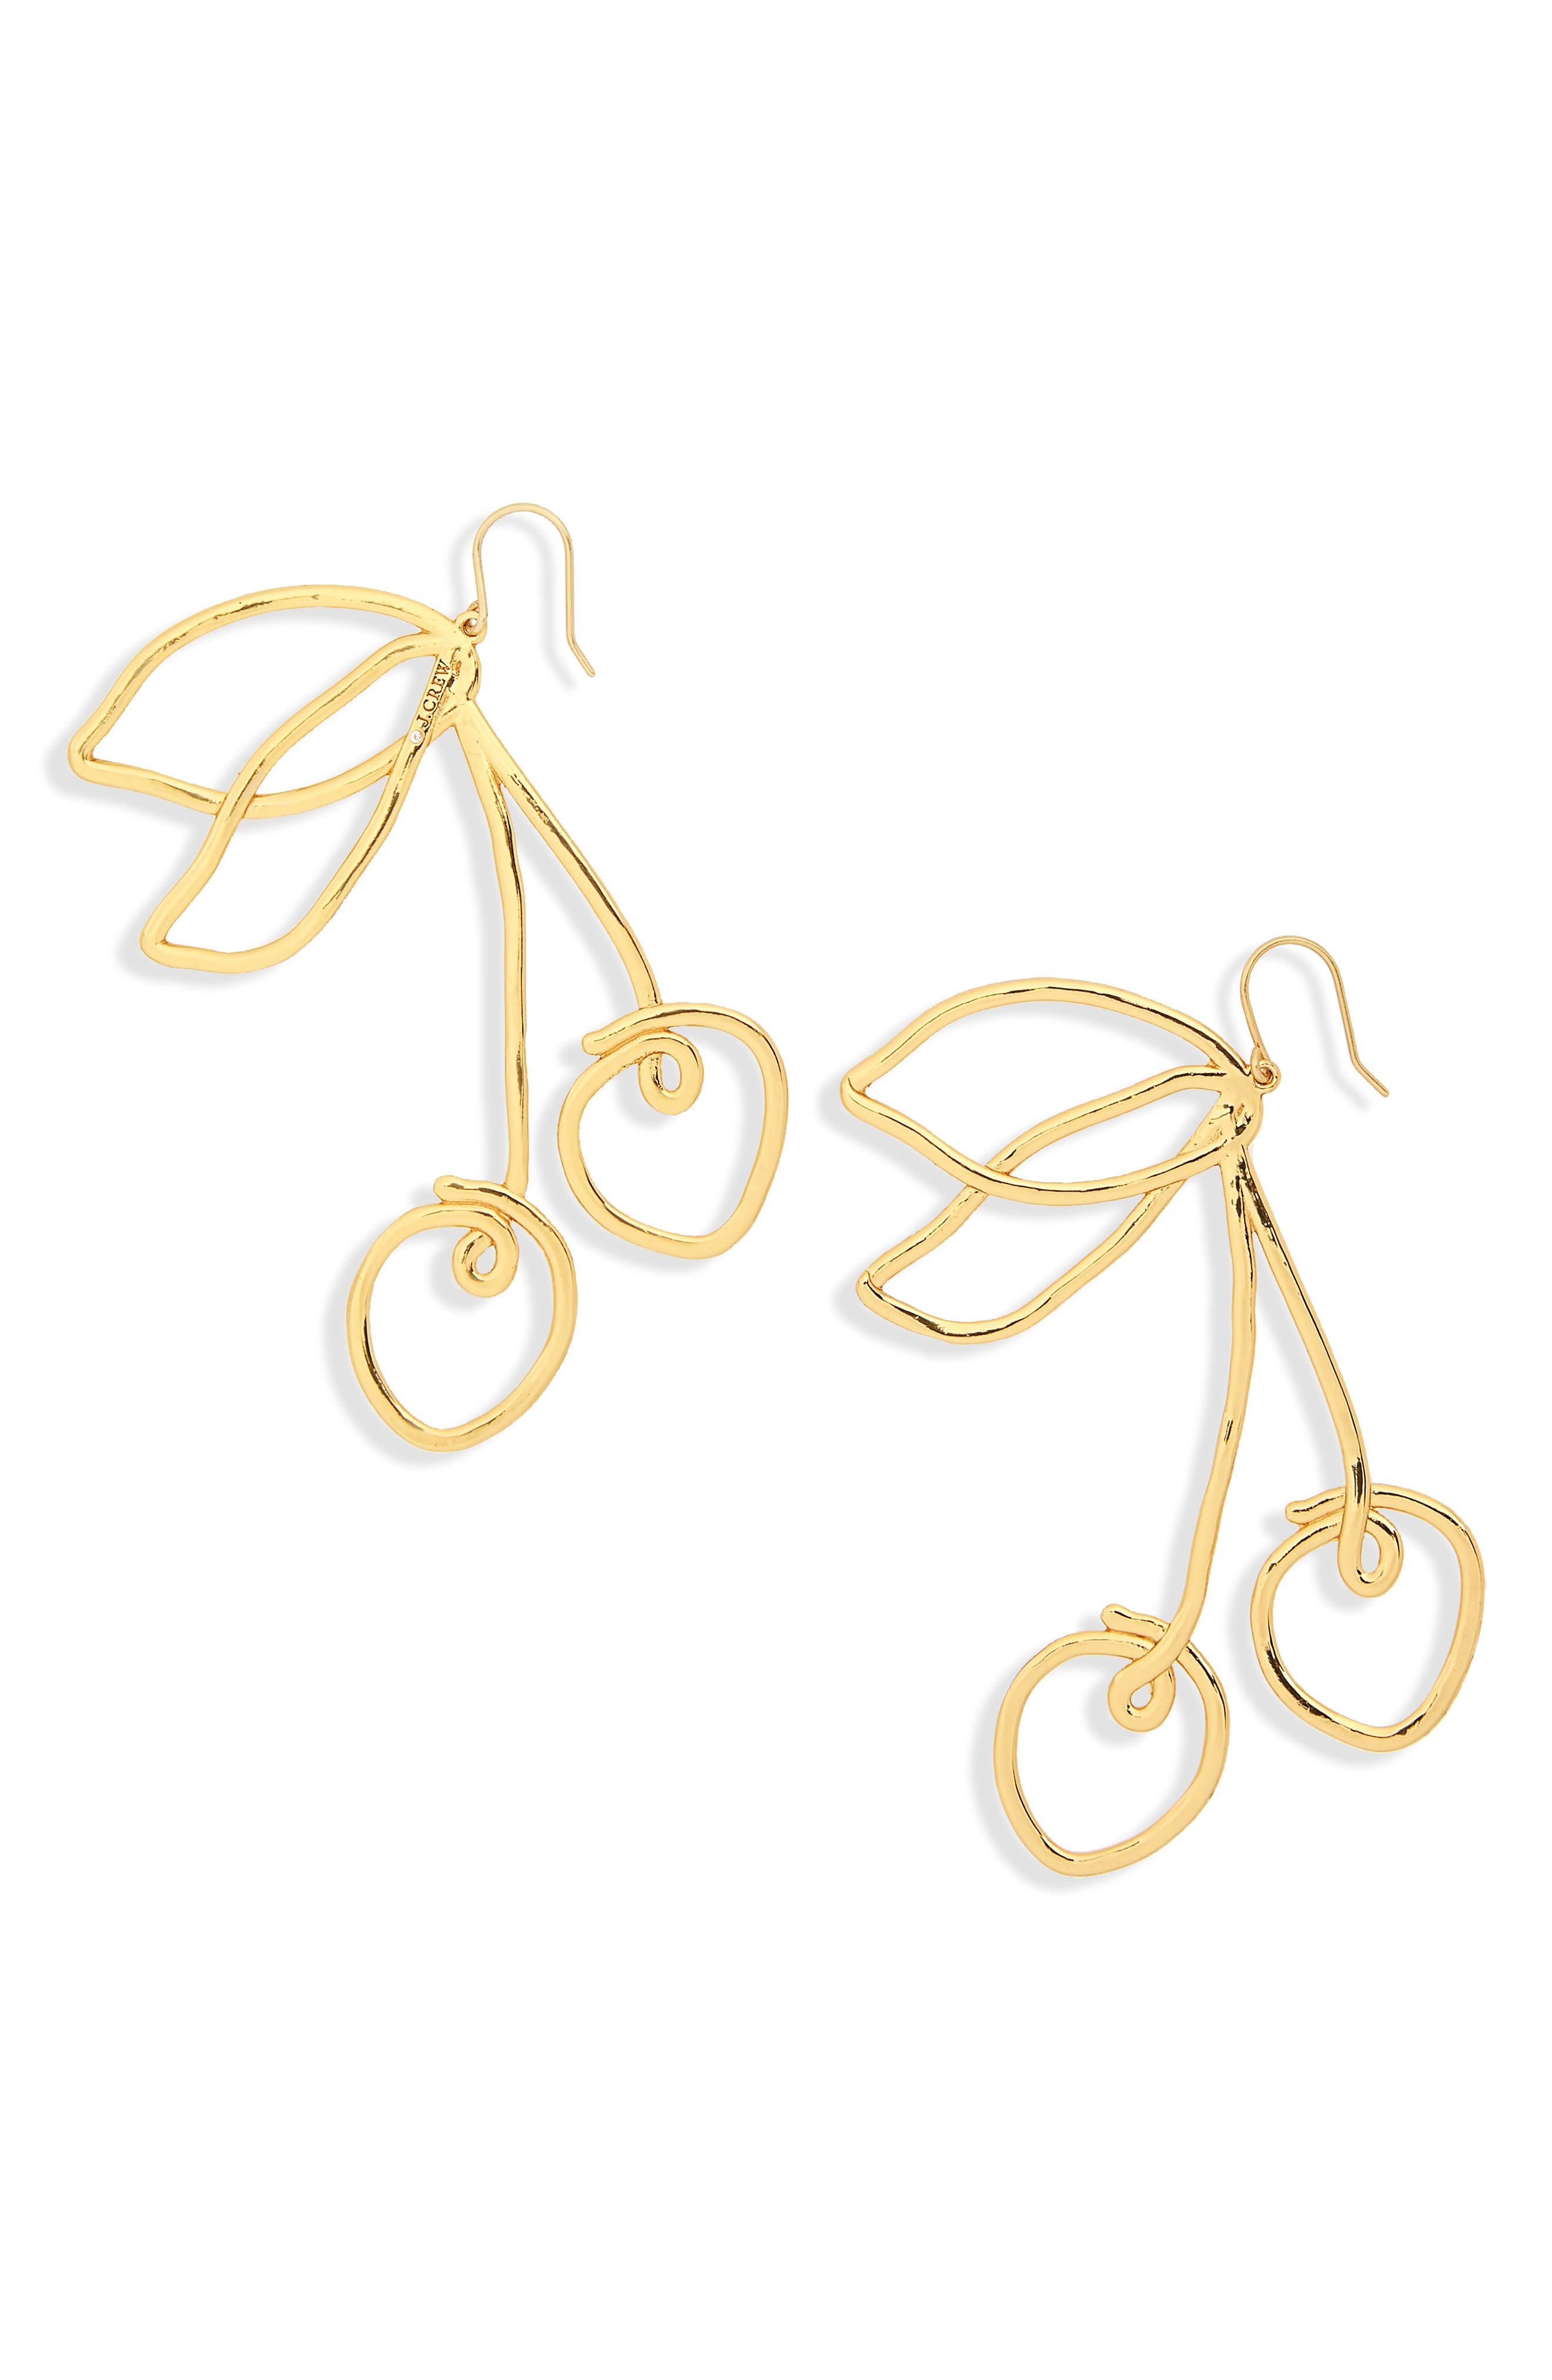 J.Crew Cherry Wire Earrings,                             Main thumbnail 1, color,                             Burnished Gold